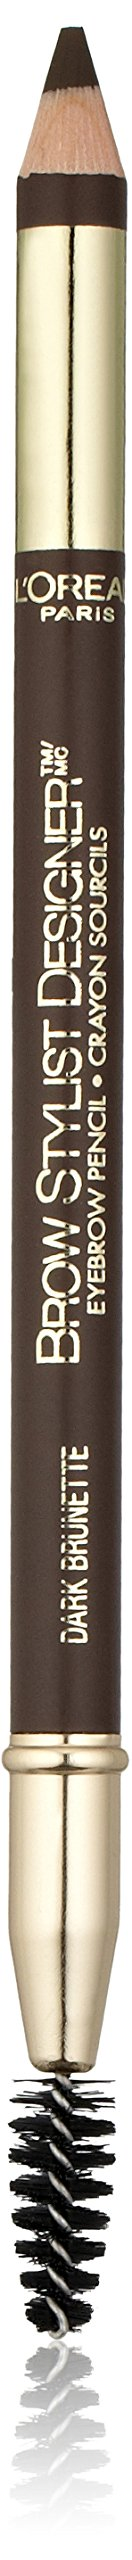 L'Oréal Paris Brow Stylist Designer Brow Pencil, Dark Brunette, 0.045 oz.